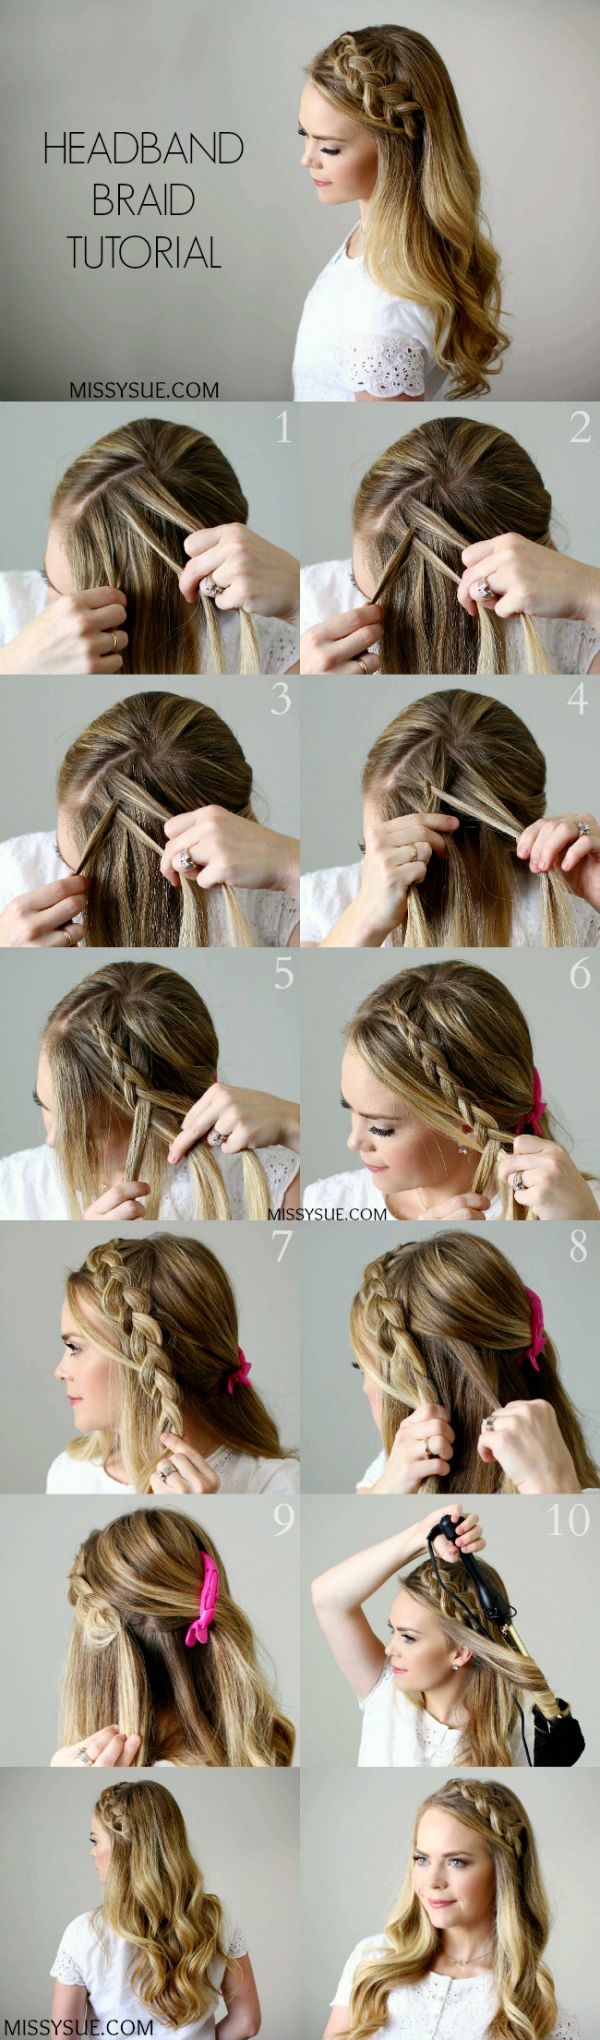 1000 Ideas About Headband Hair On Pinterest Bun Maker Woman